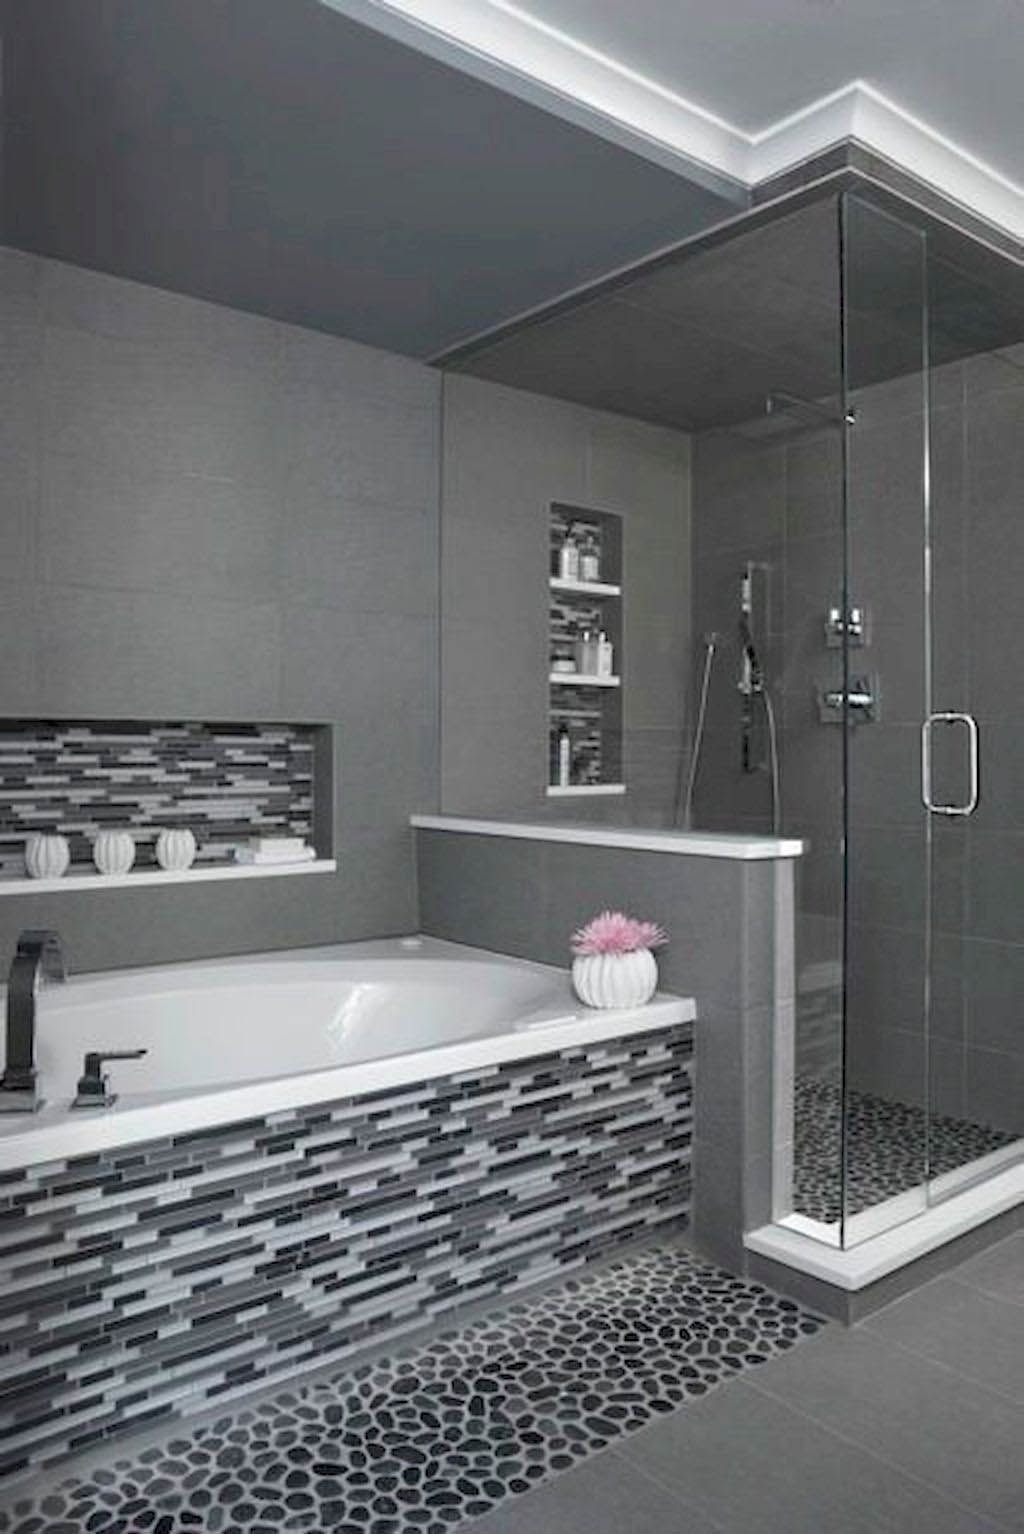 Remarkable Small Bathroom Design Ideas In The Philippines For Your Cozy Home Smallbathroomdesignswiths Bathrooms Remodel Small Bathroom Master Bathroom Design Bathroom design ideas philippines